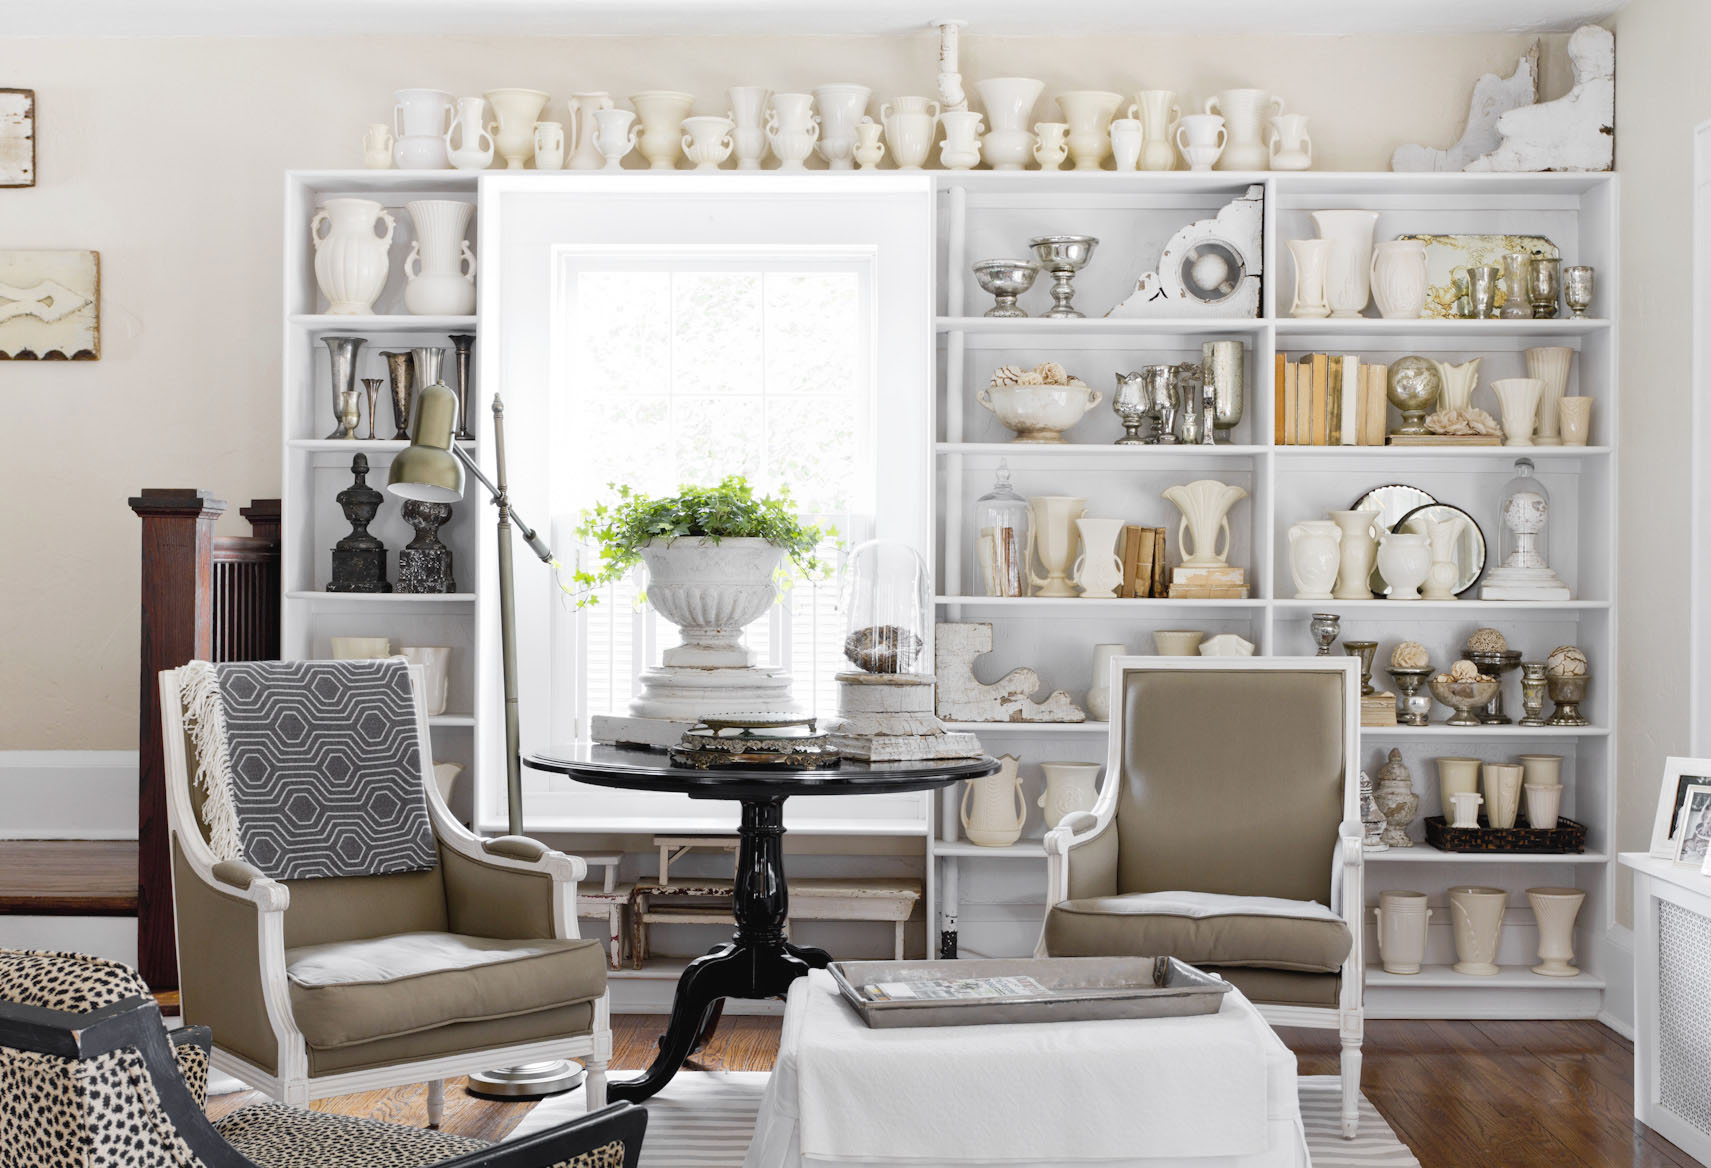 white-pottery-collection-sitting-room-interior-photography.jpg